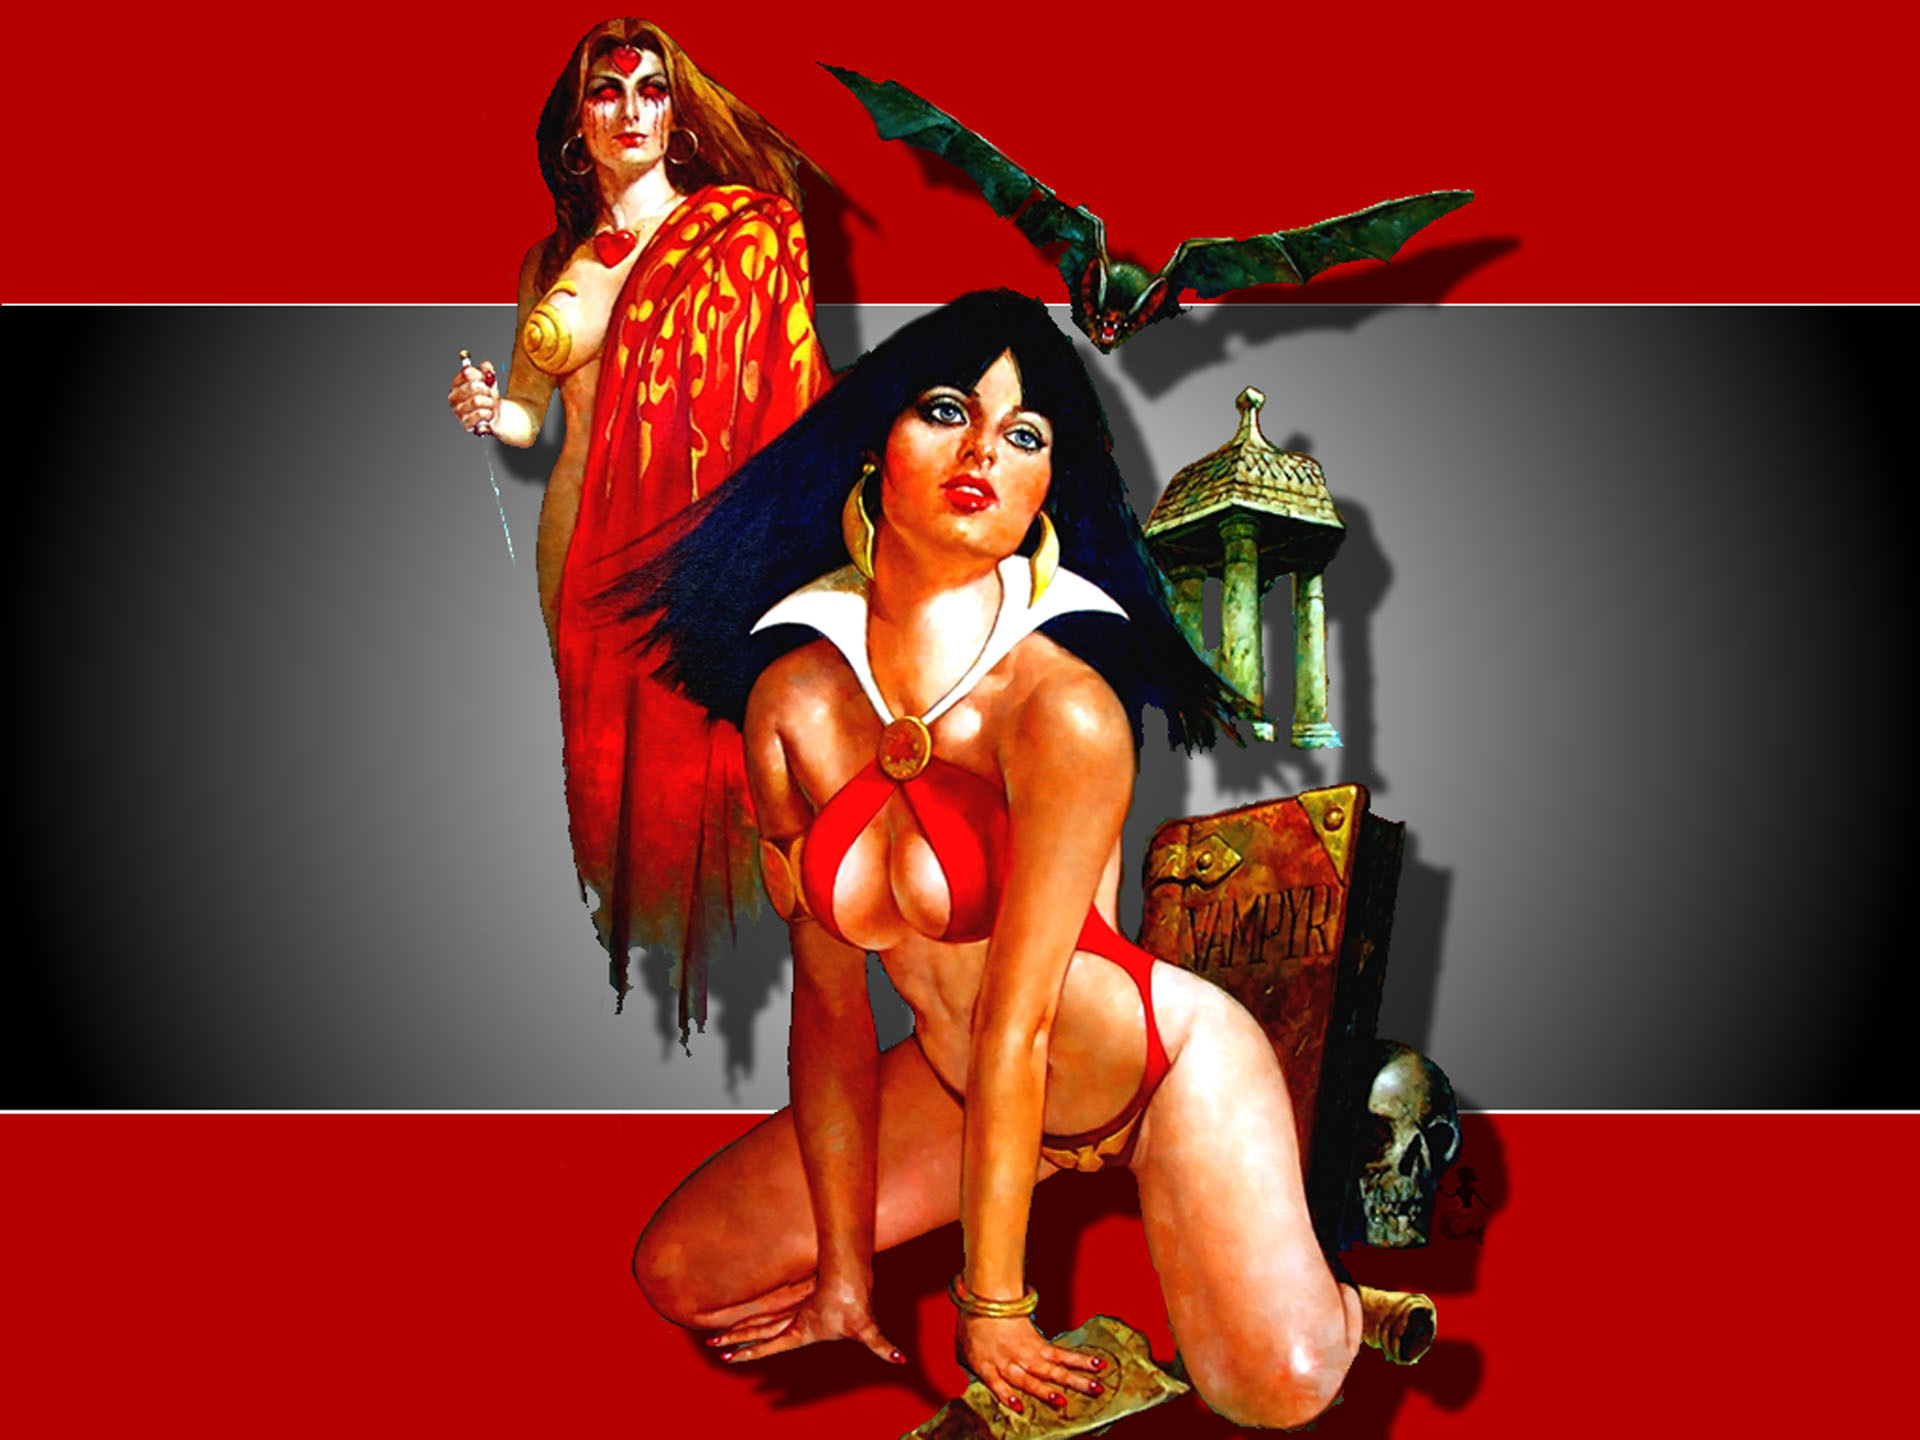 comics Vampirella heroine comic HD Wallpaper